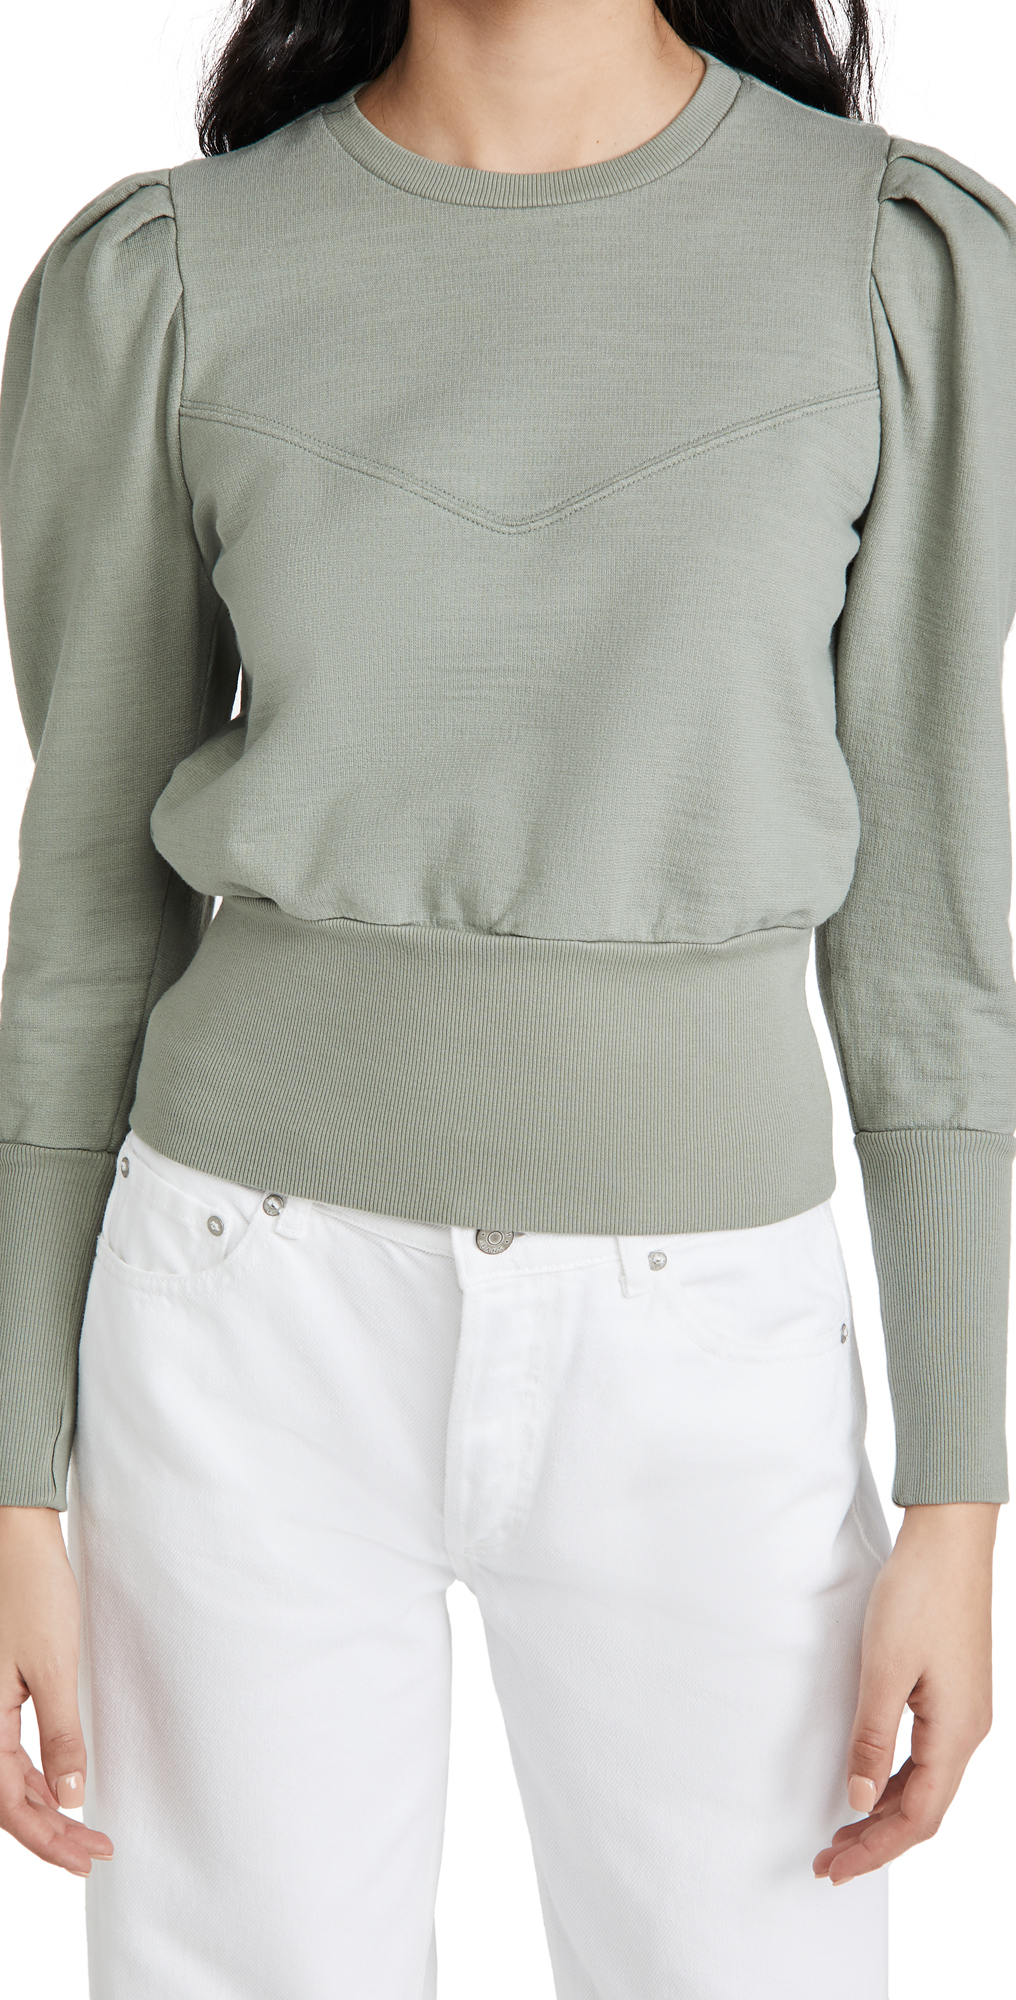 Ag SEAM WALKER PUFF SLEEVE SWEATSHIRT WITH YOKE